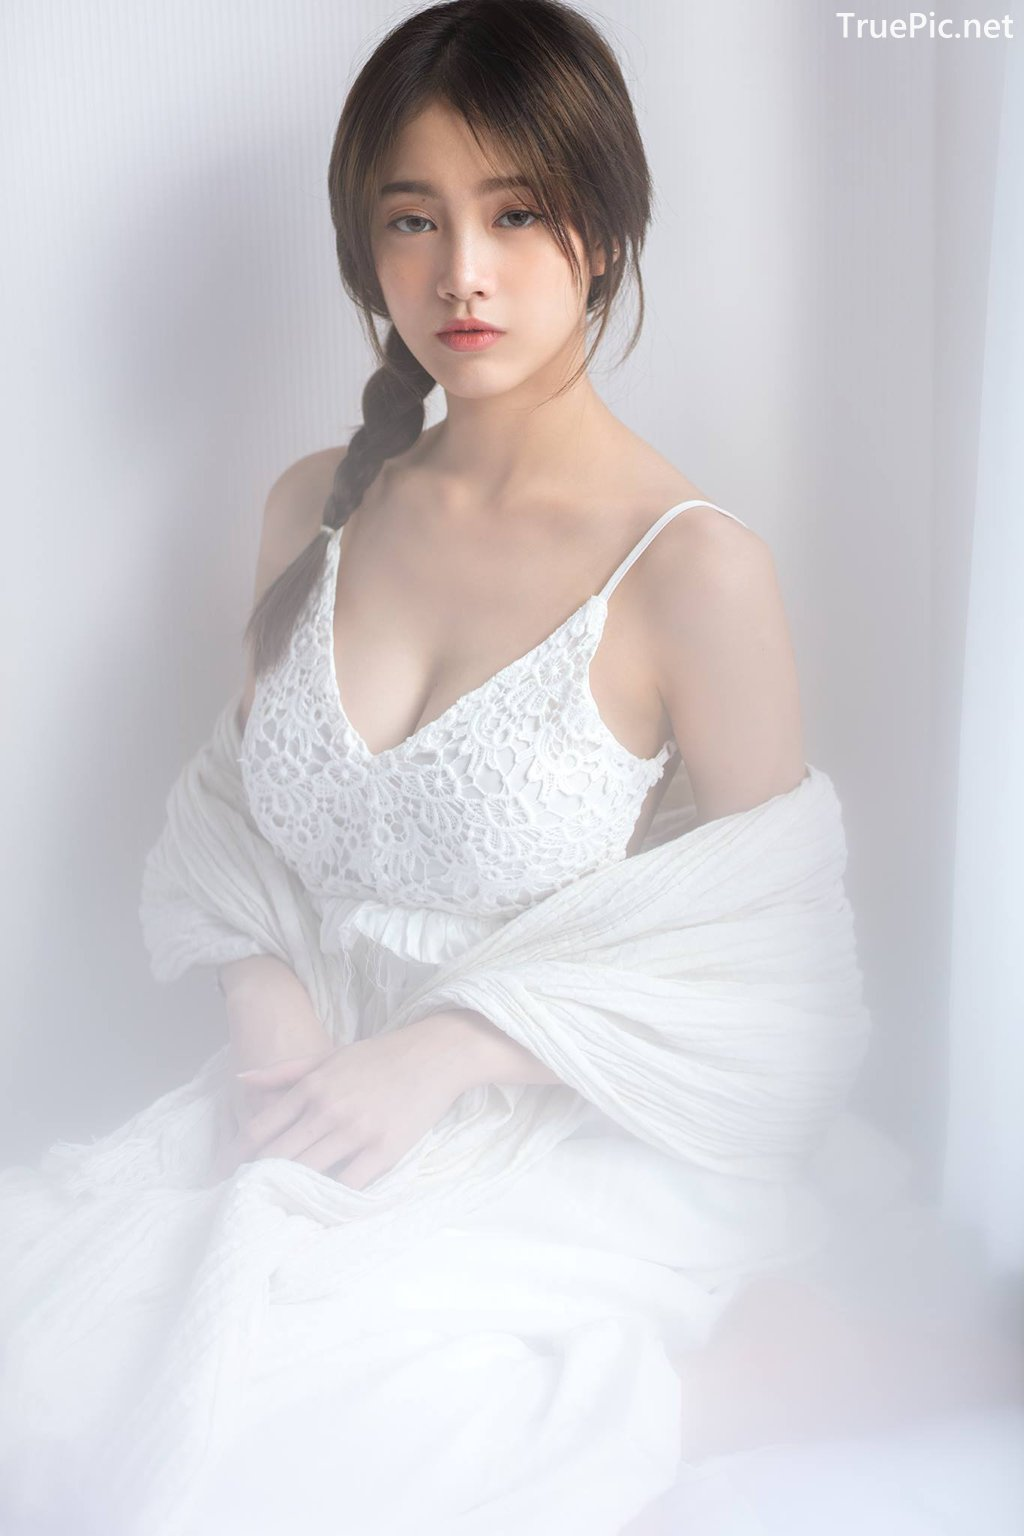 Image Thailand Model - Pimploy Chitranapawong - Beautiful In White - TruePic.net - Picture-2